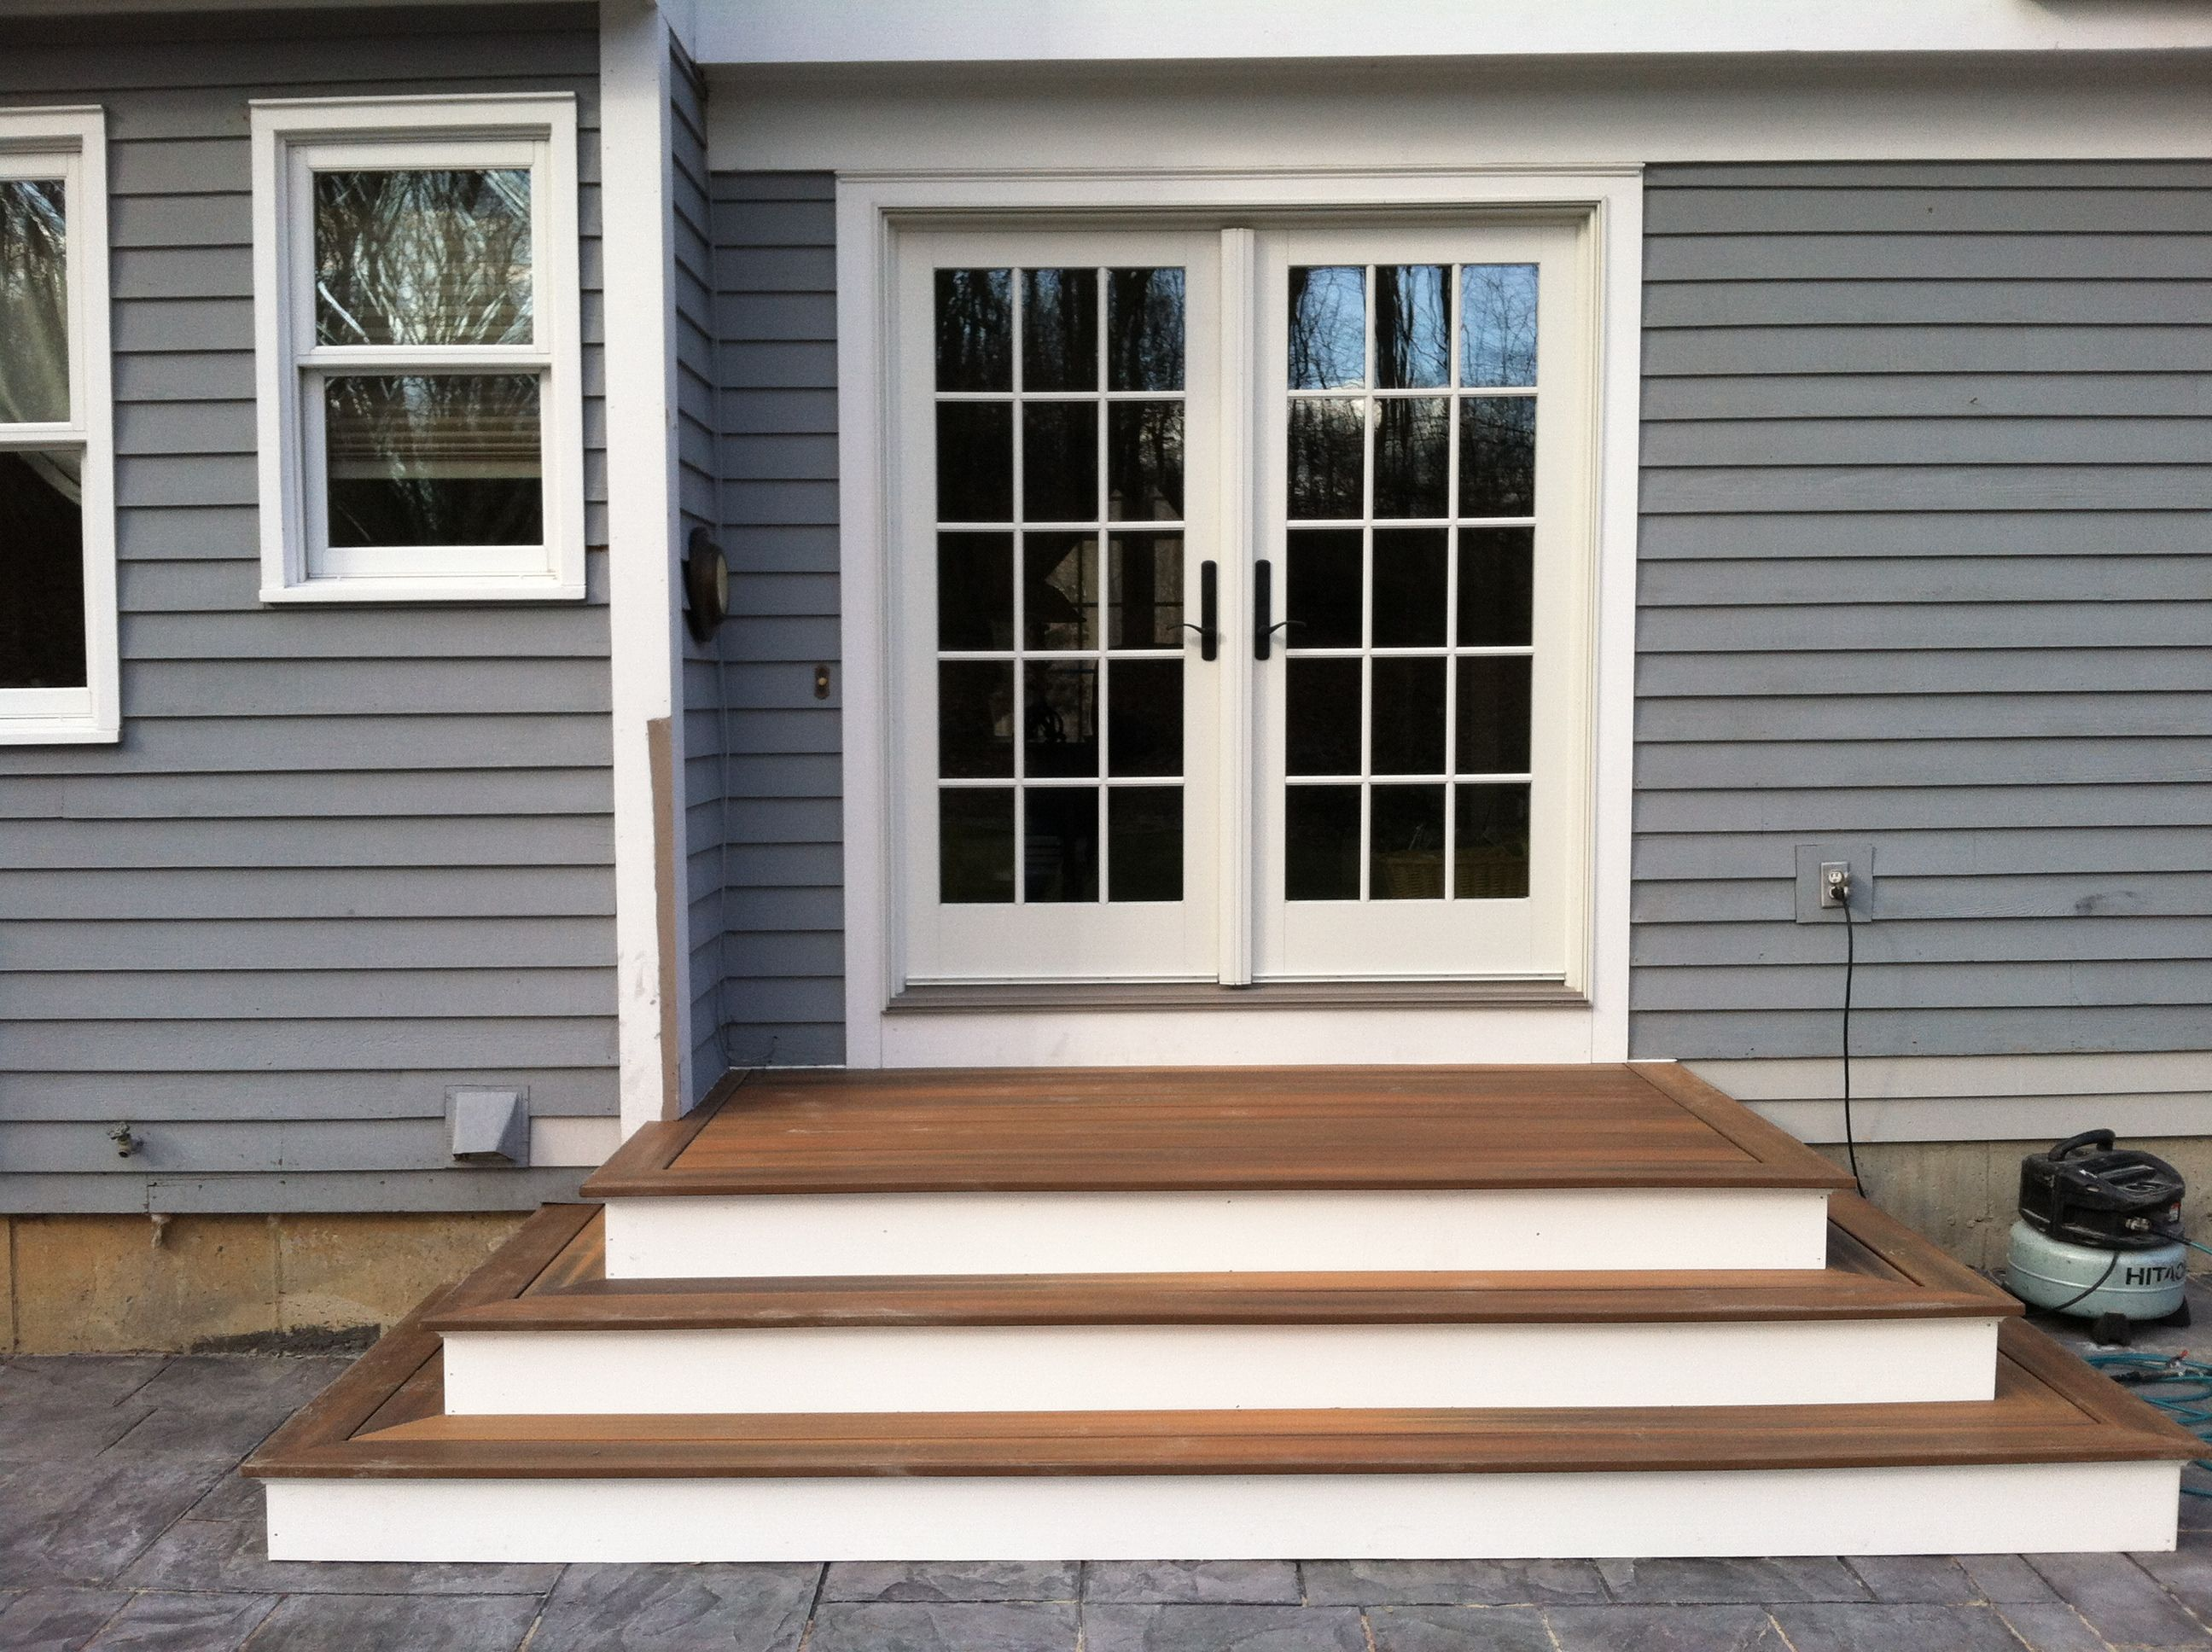 Wooden Front Steps Yahoo Image Search Results Patio Stairs   Back Door Step Designs   Stone Veneer   Step Down   Paver   Brick   Block Paving Step